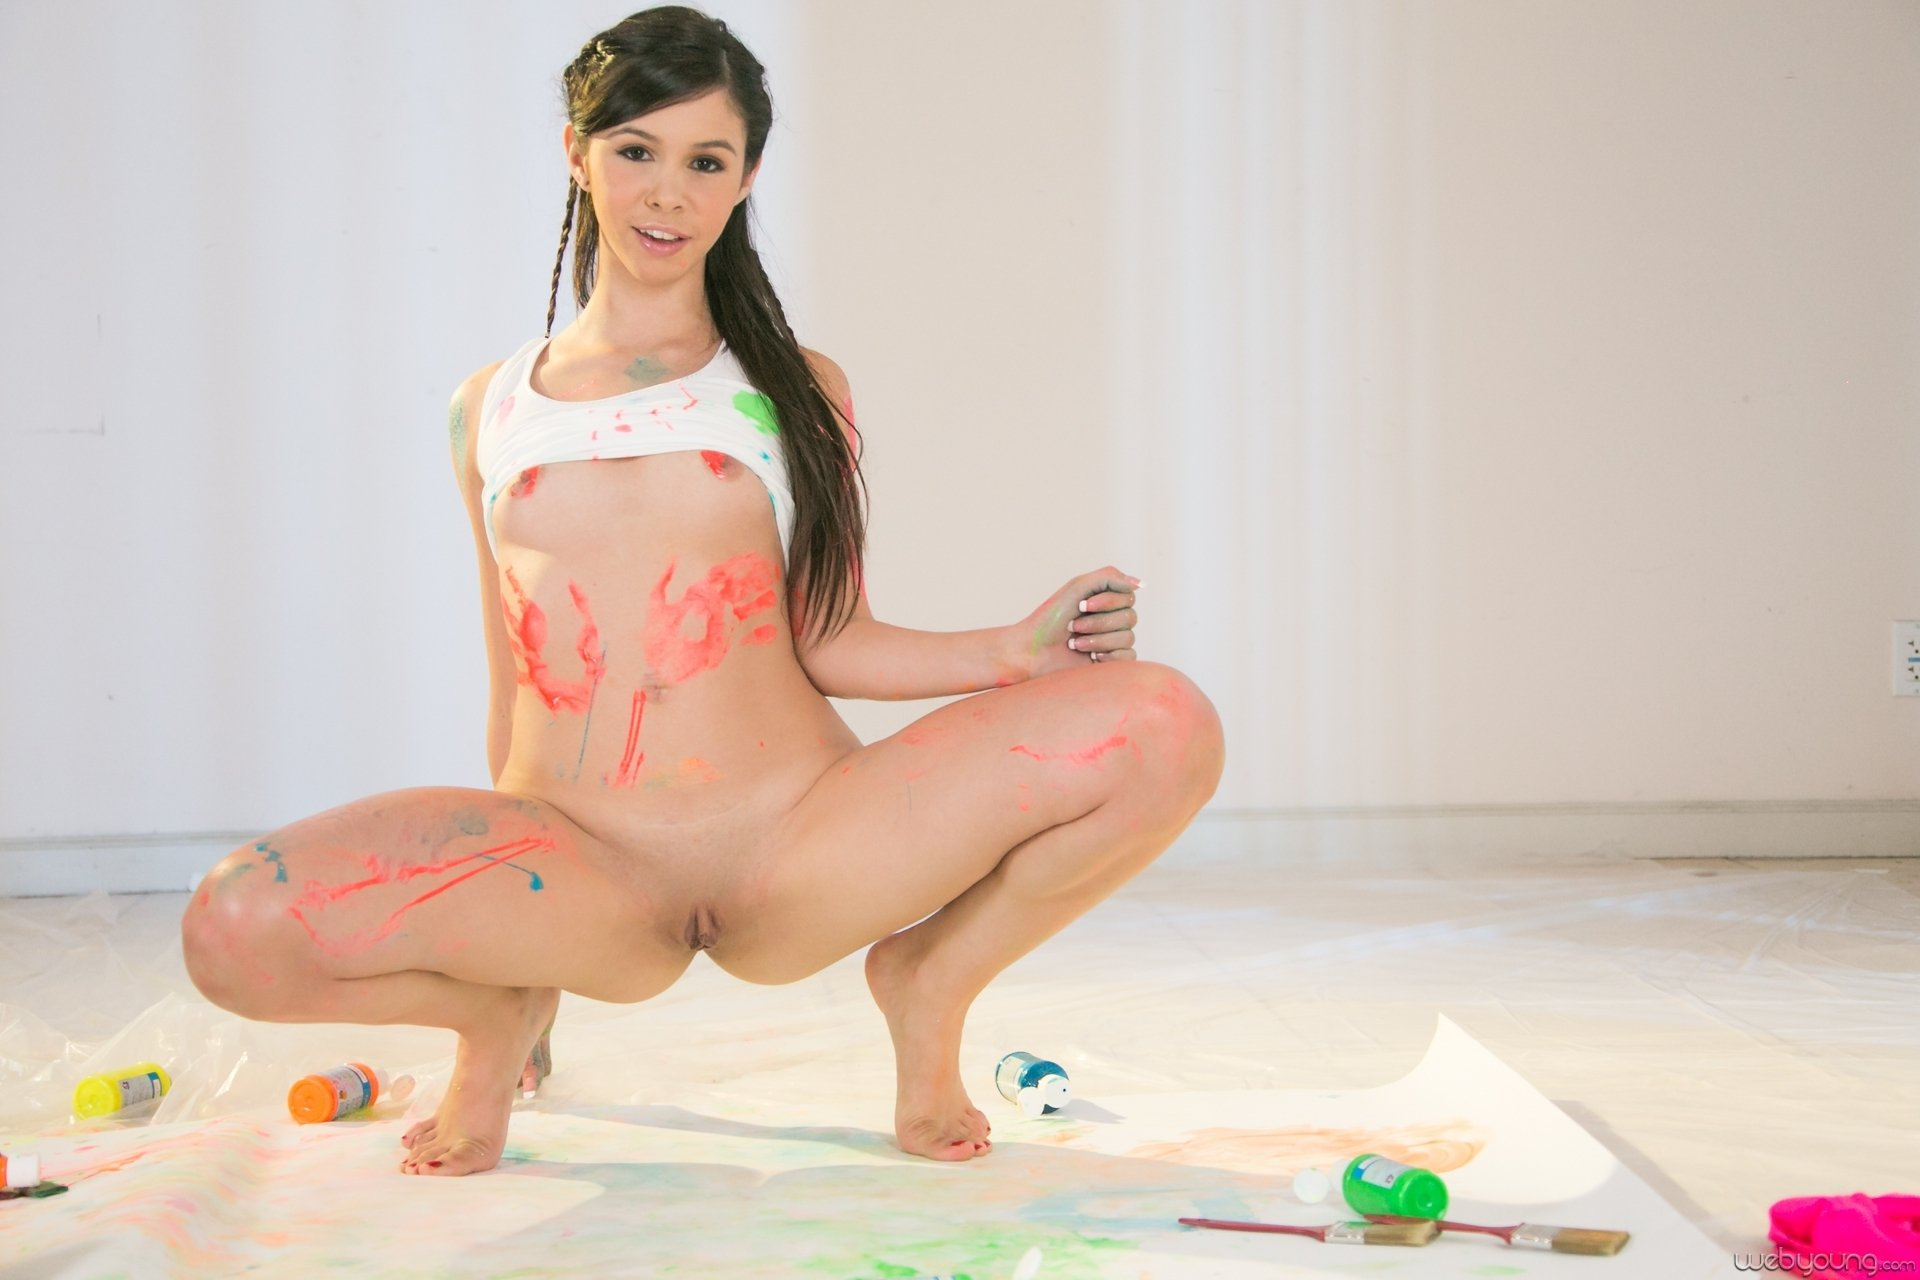 Sonclothed and nudist chubby teen amature porn